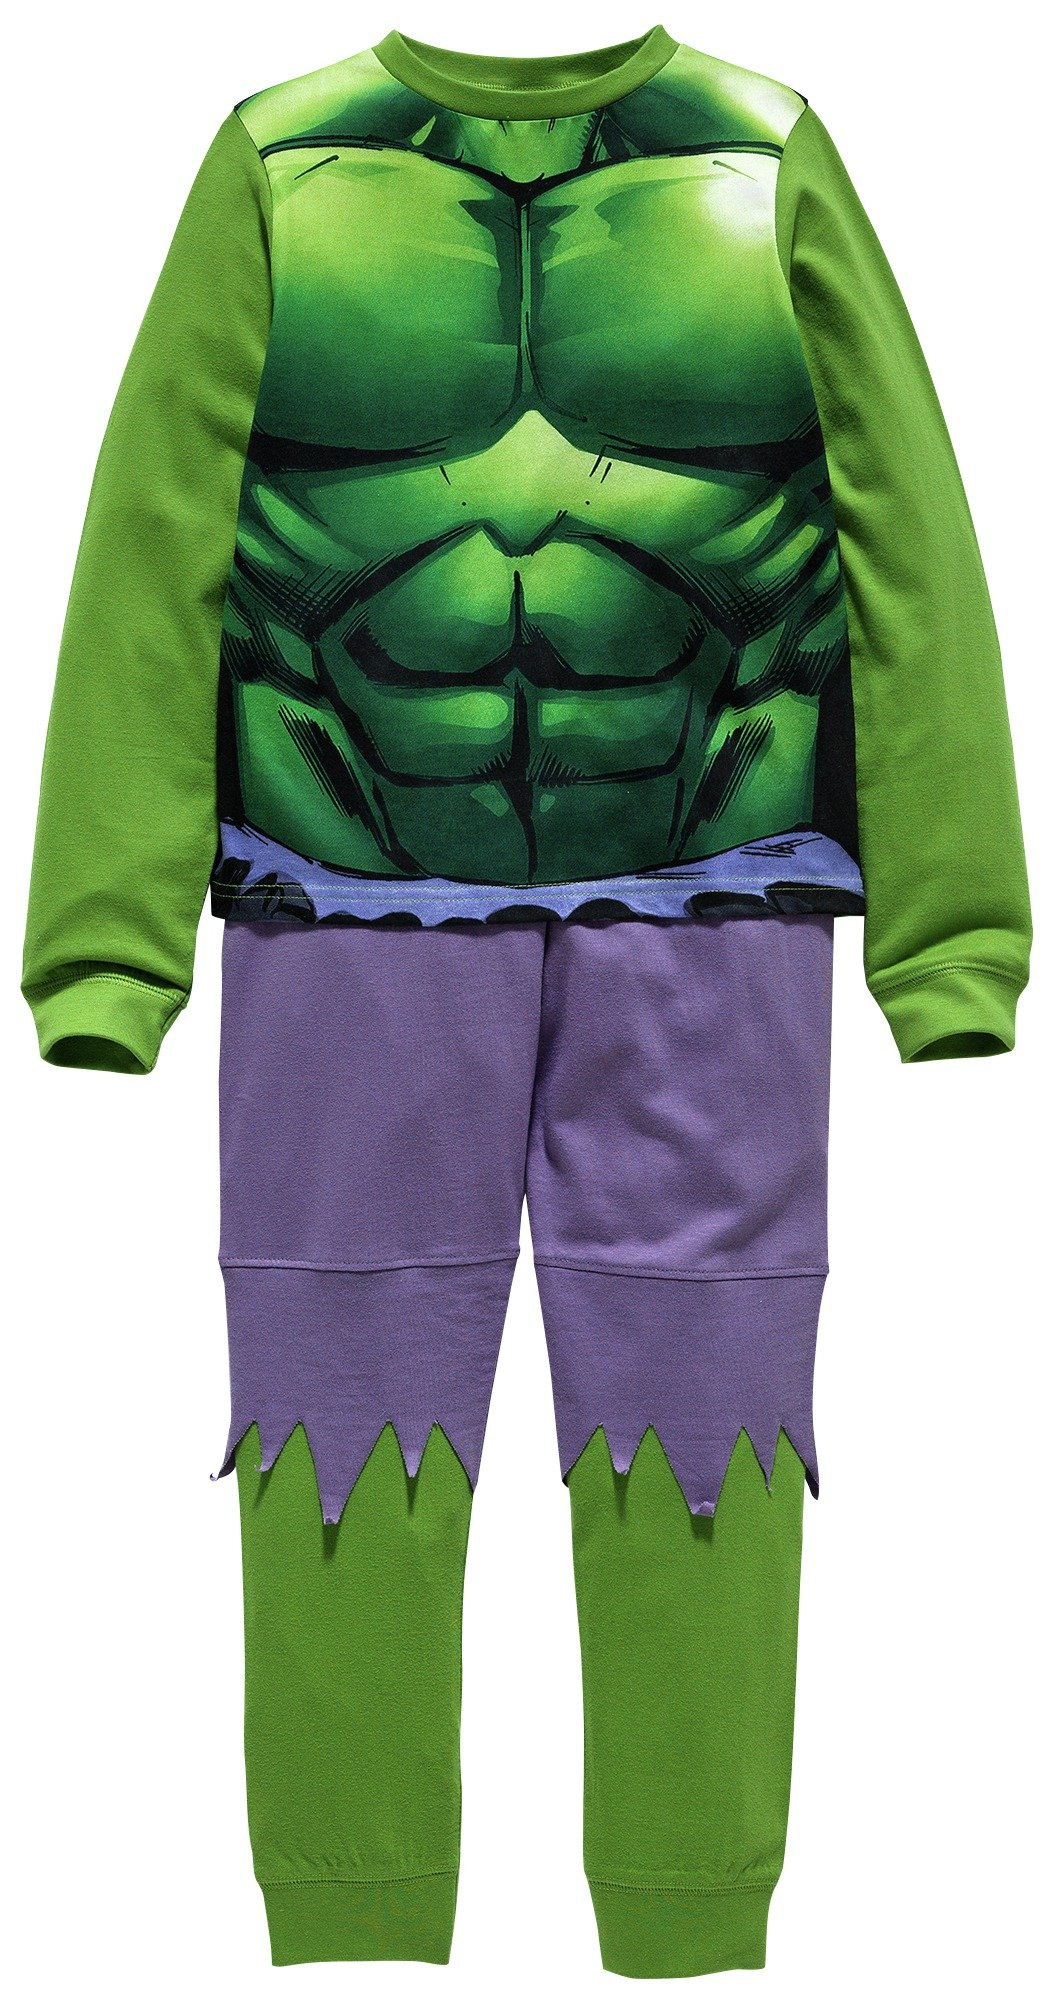 Image of Hulk Novelty Pyjamas 2-3 Years.